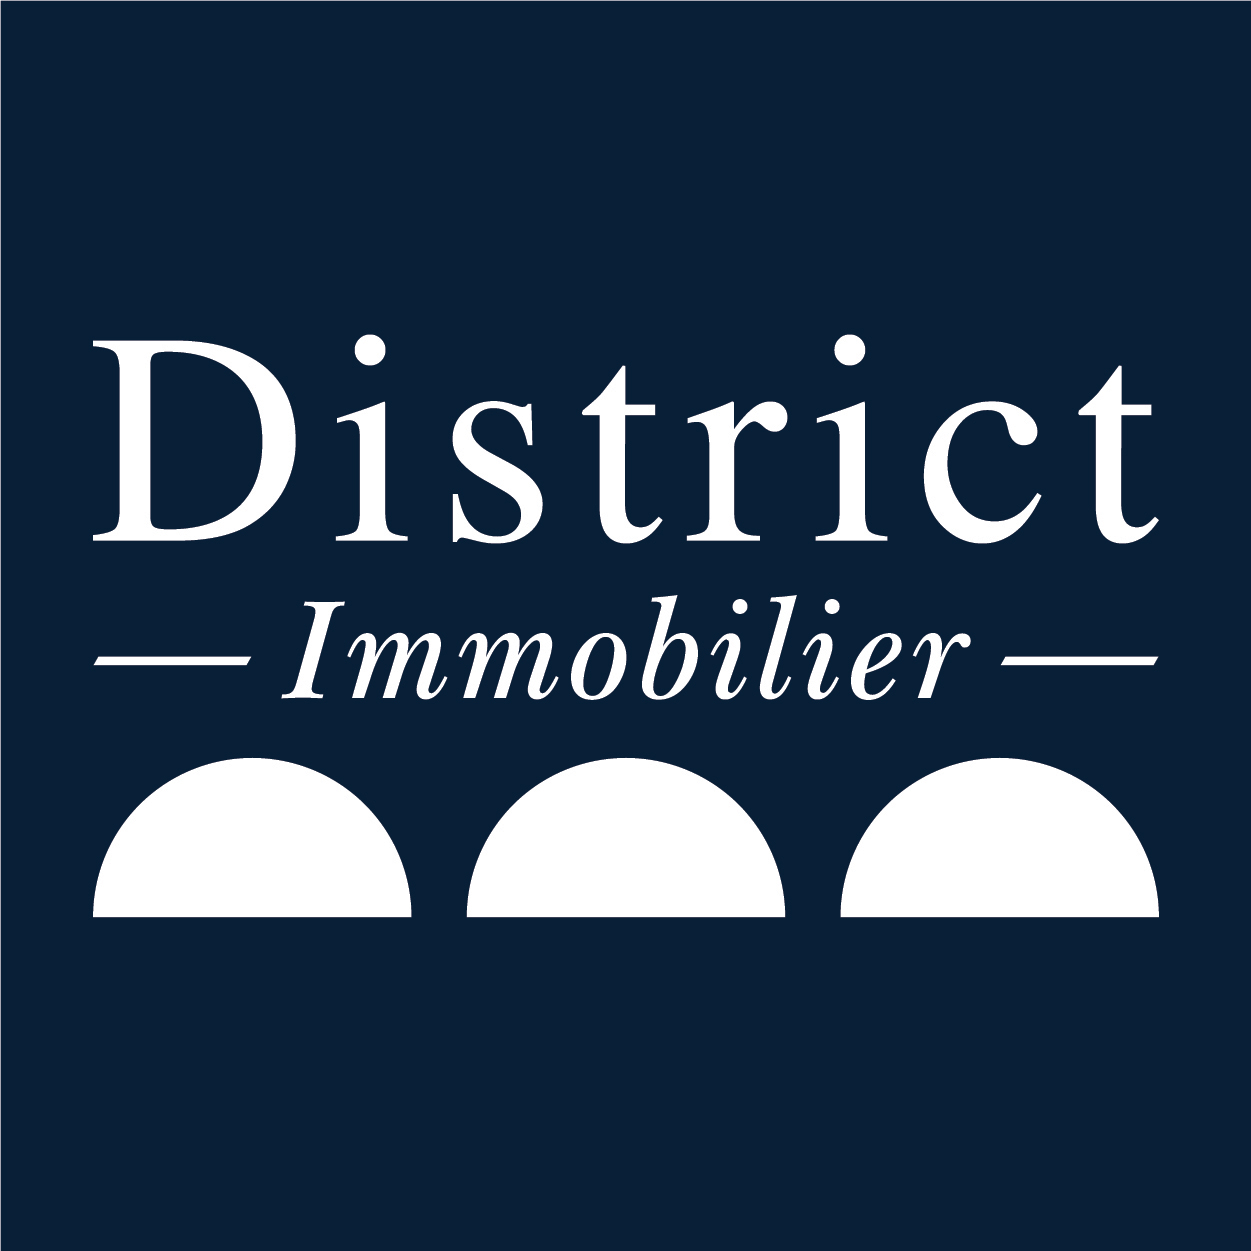 District Immobilier Champ de Mars